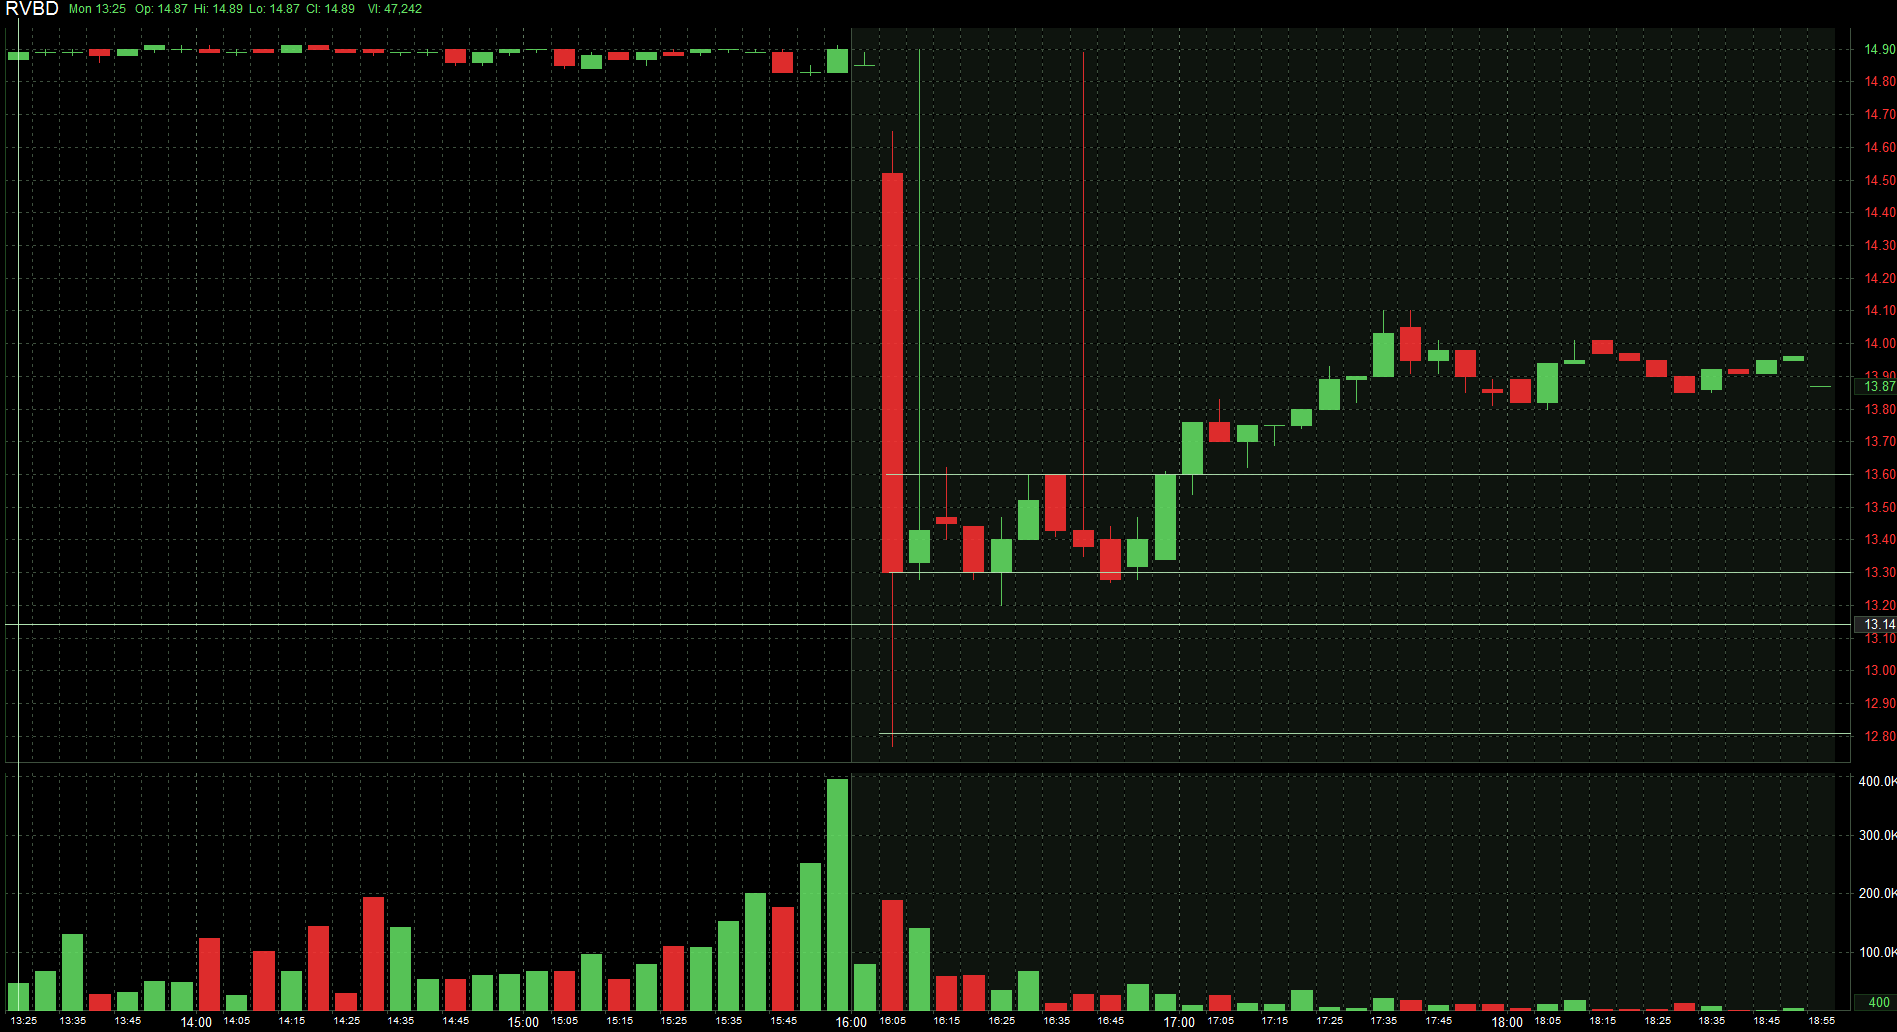 http://charts.stocktwits.net/production/original_13288999.png?1367276400